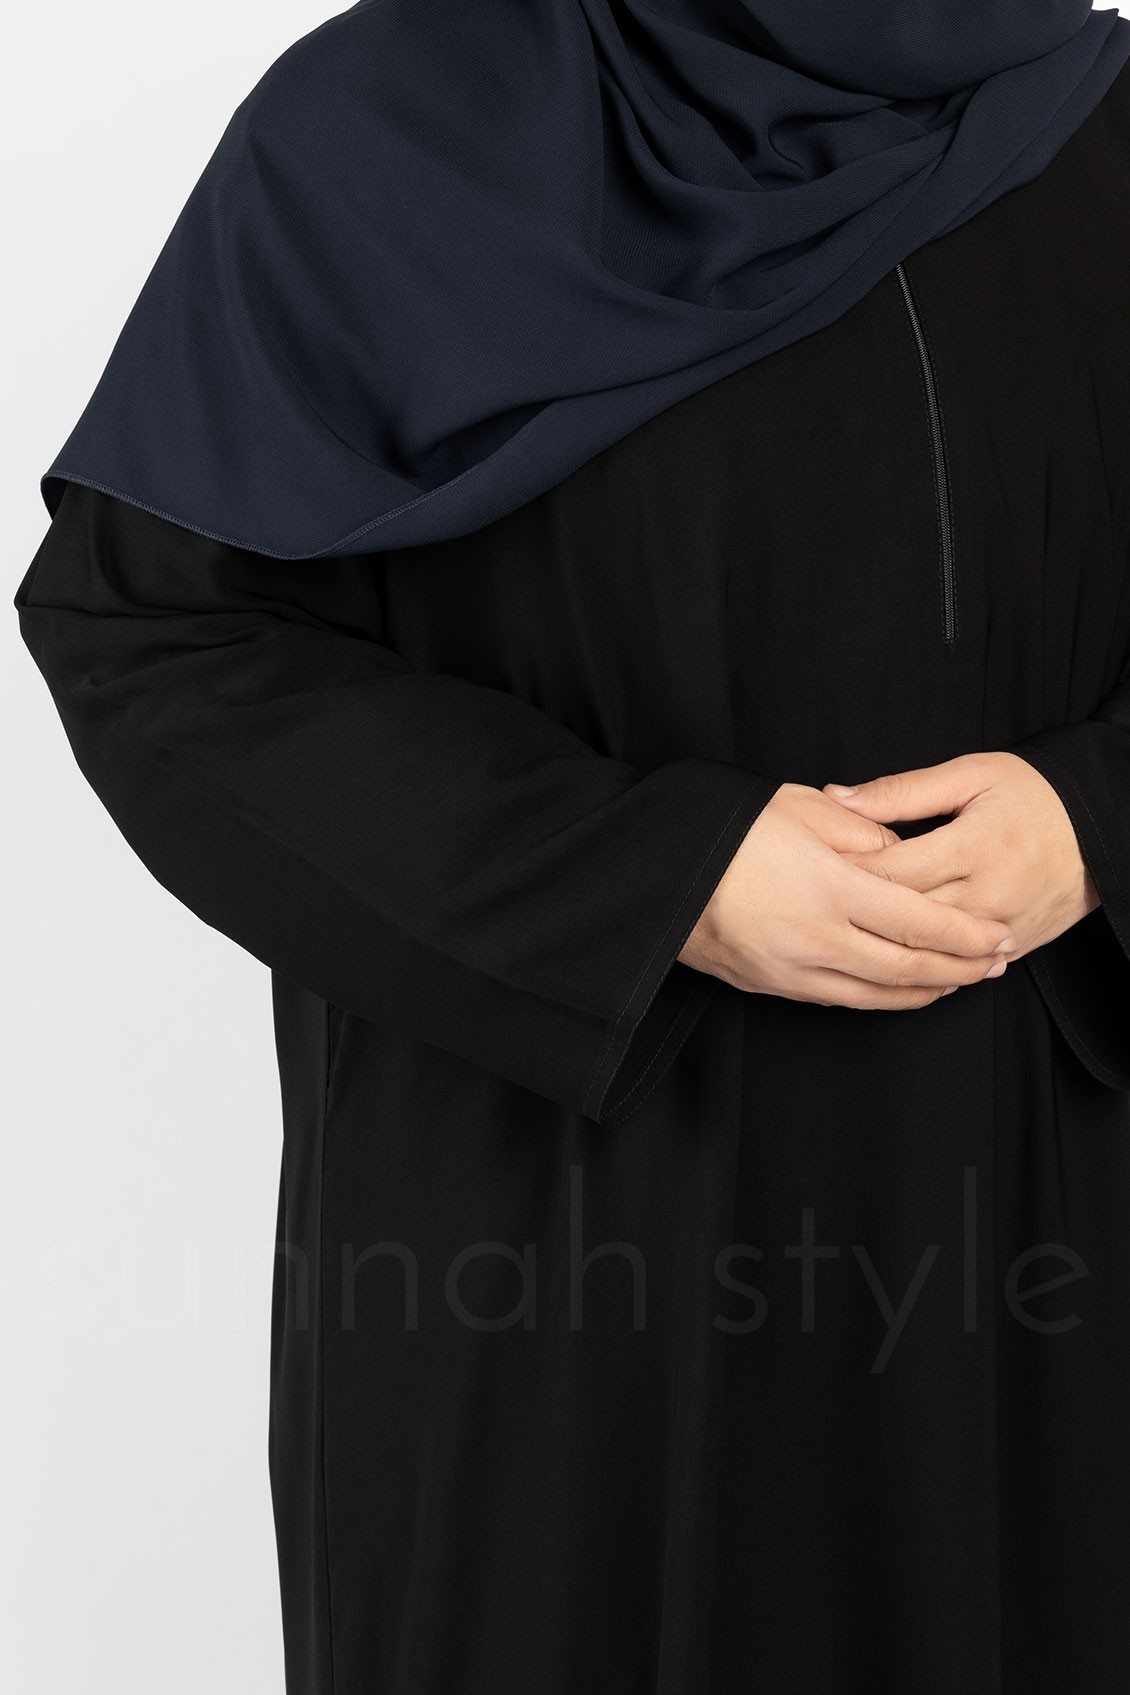 Sunnah Style Plain Closed Abaya Plus Black